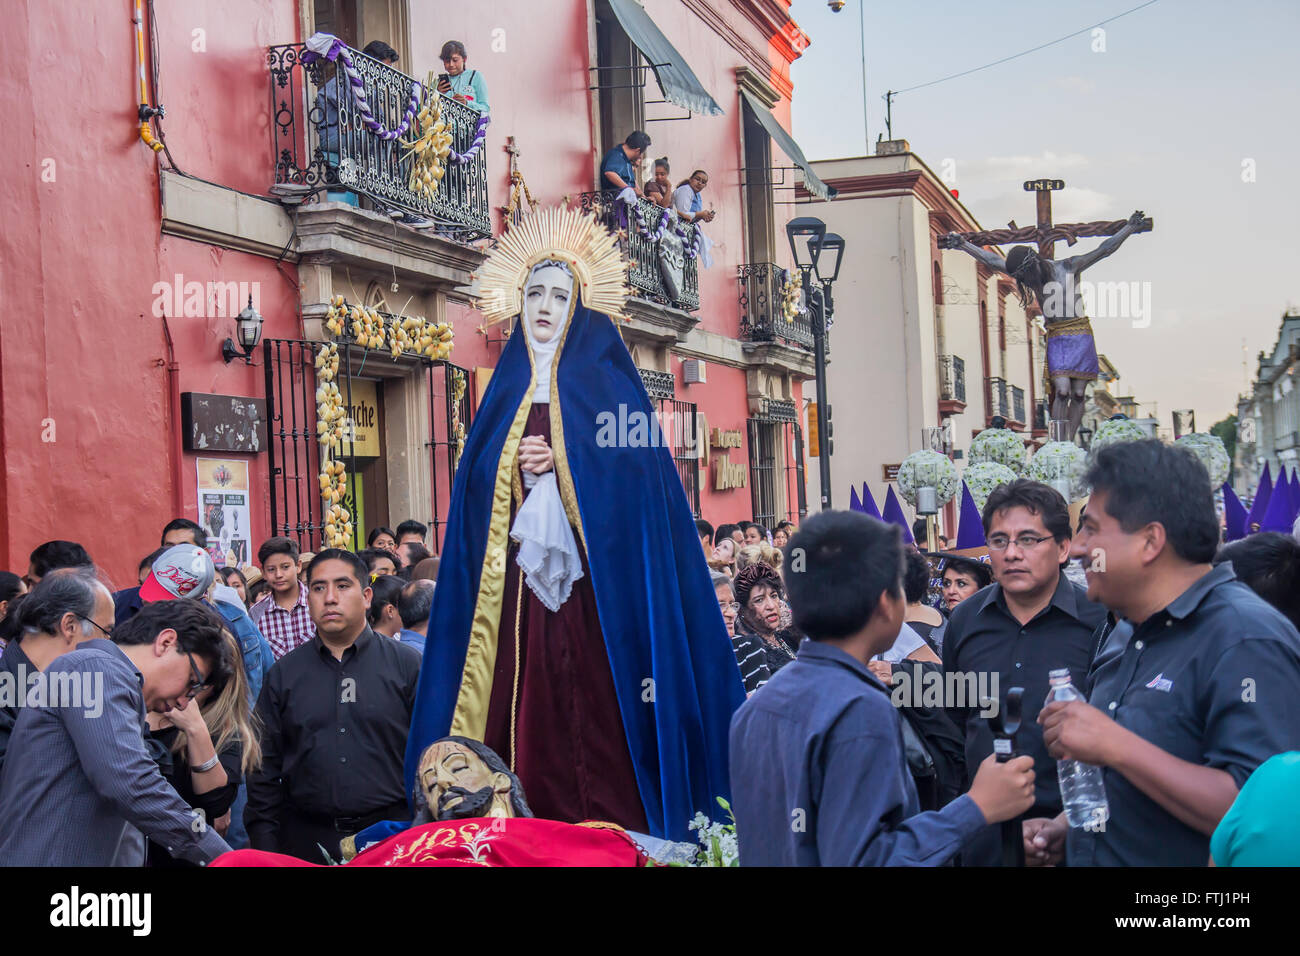 The Holy Friday procession in Oaxaca, Mexico. Stock Photo